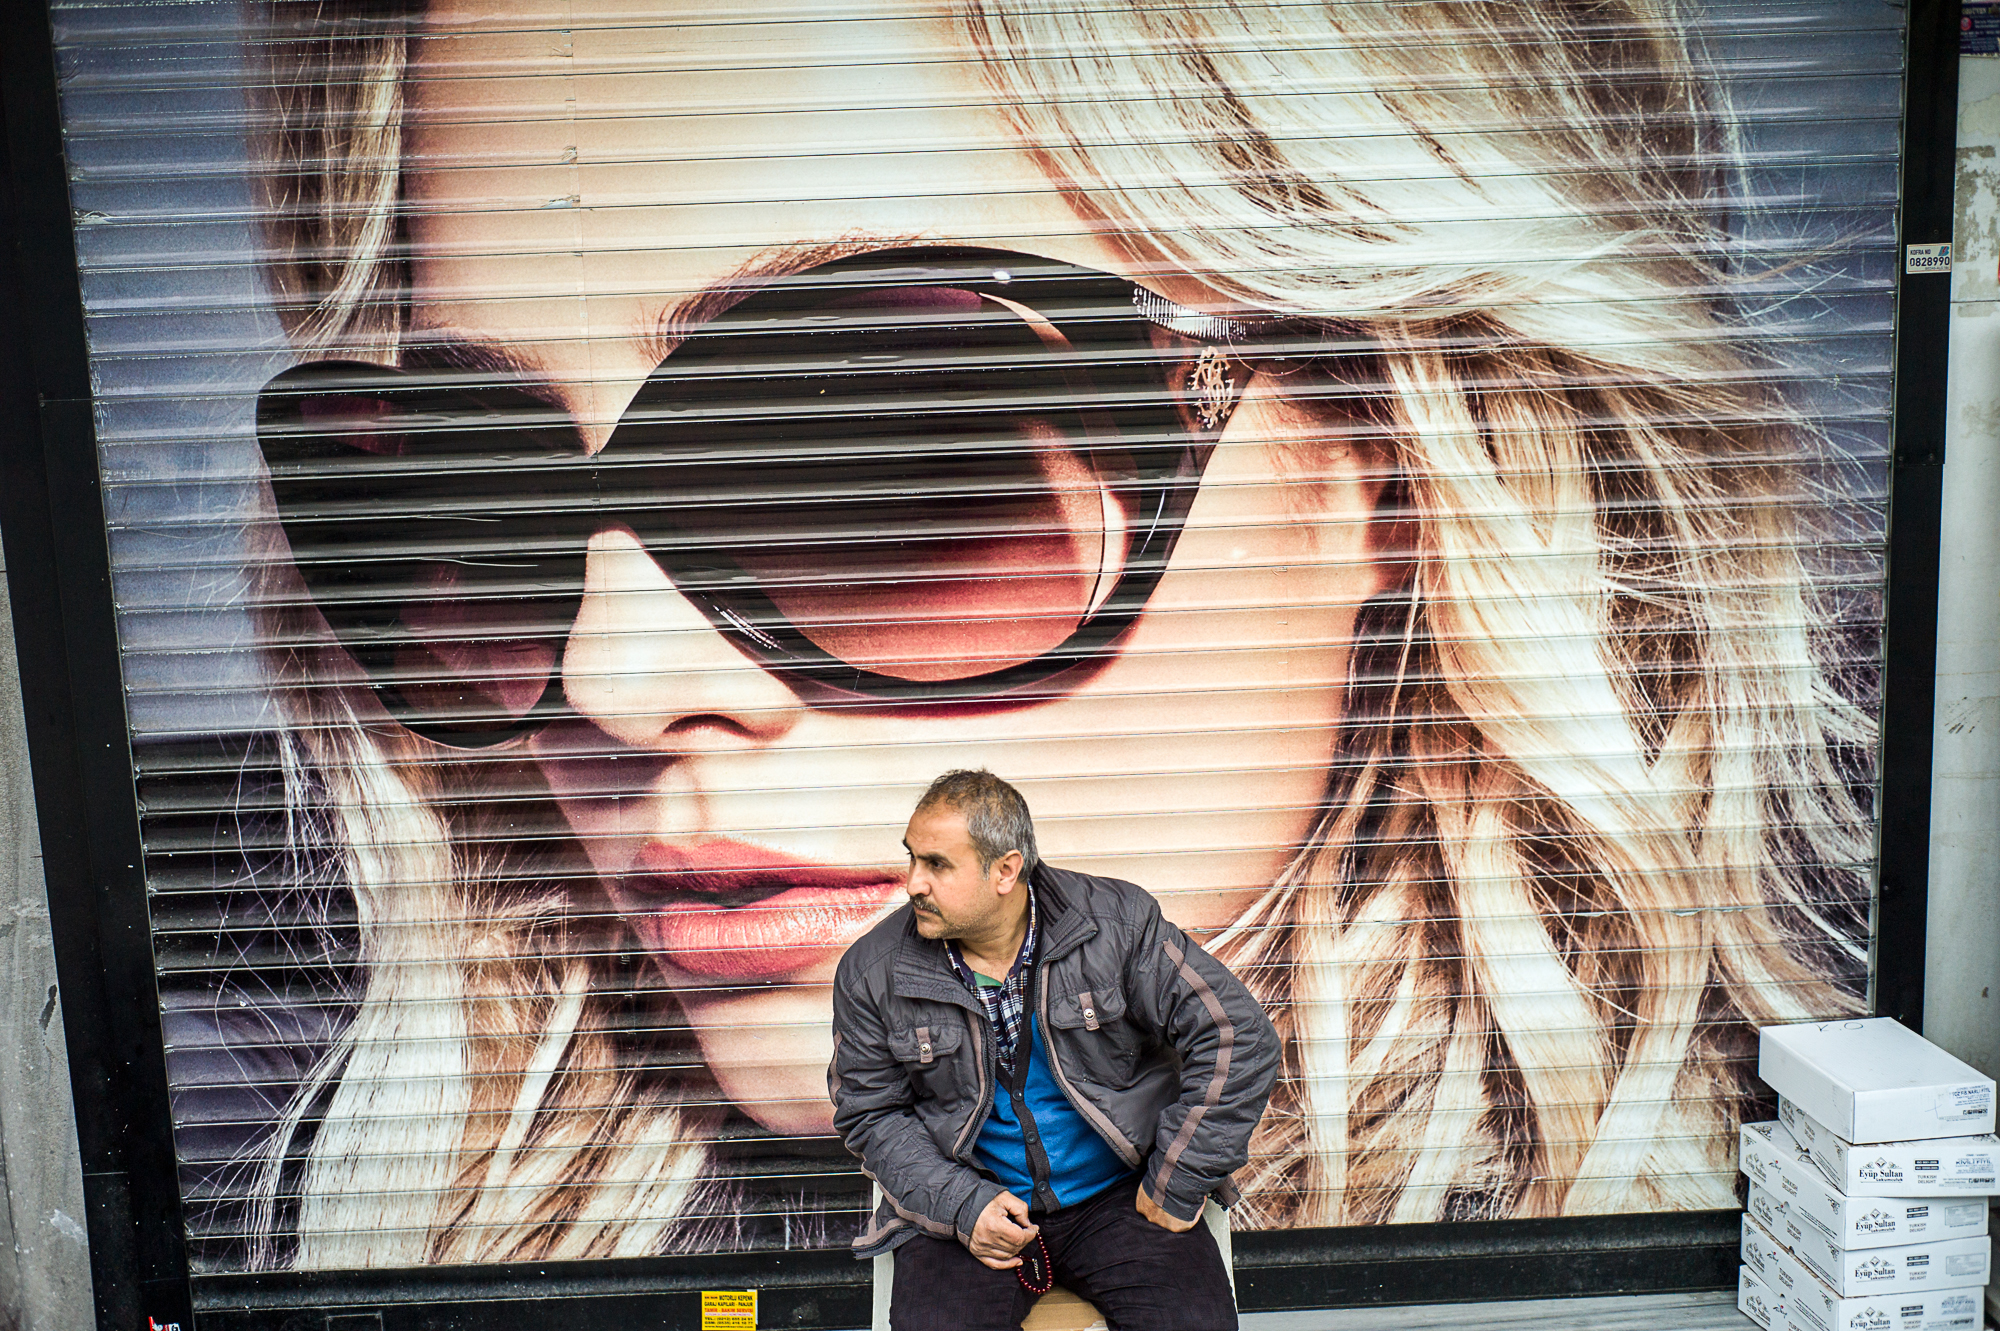 Sunglasses : A man is sitting in front of a shop, Istanbul